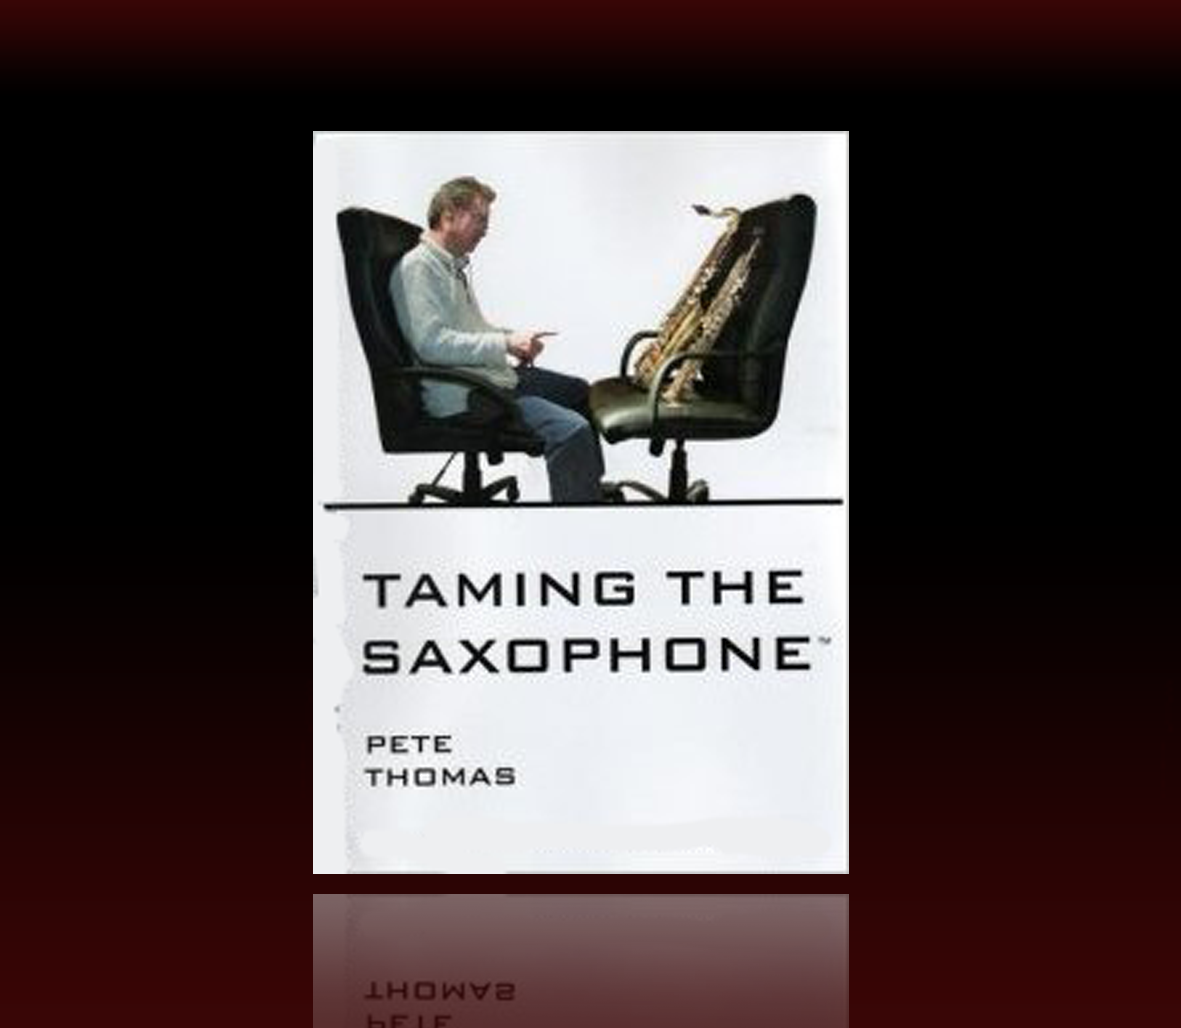 Pete Thomas - Taming The Saxophone